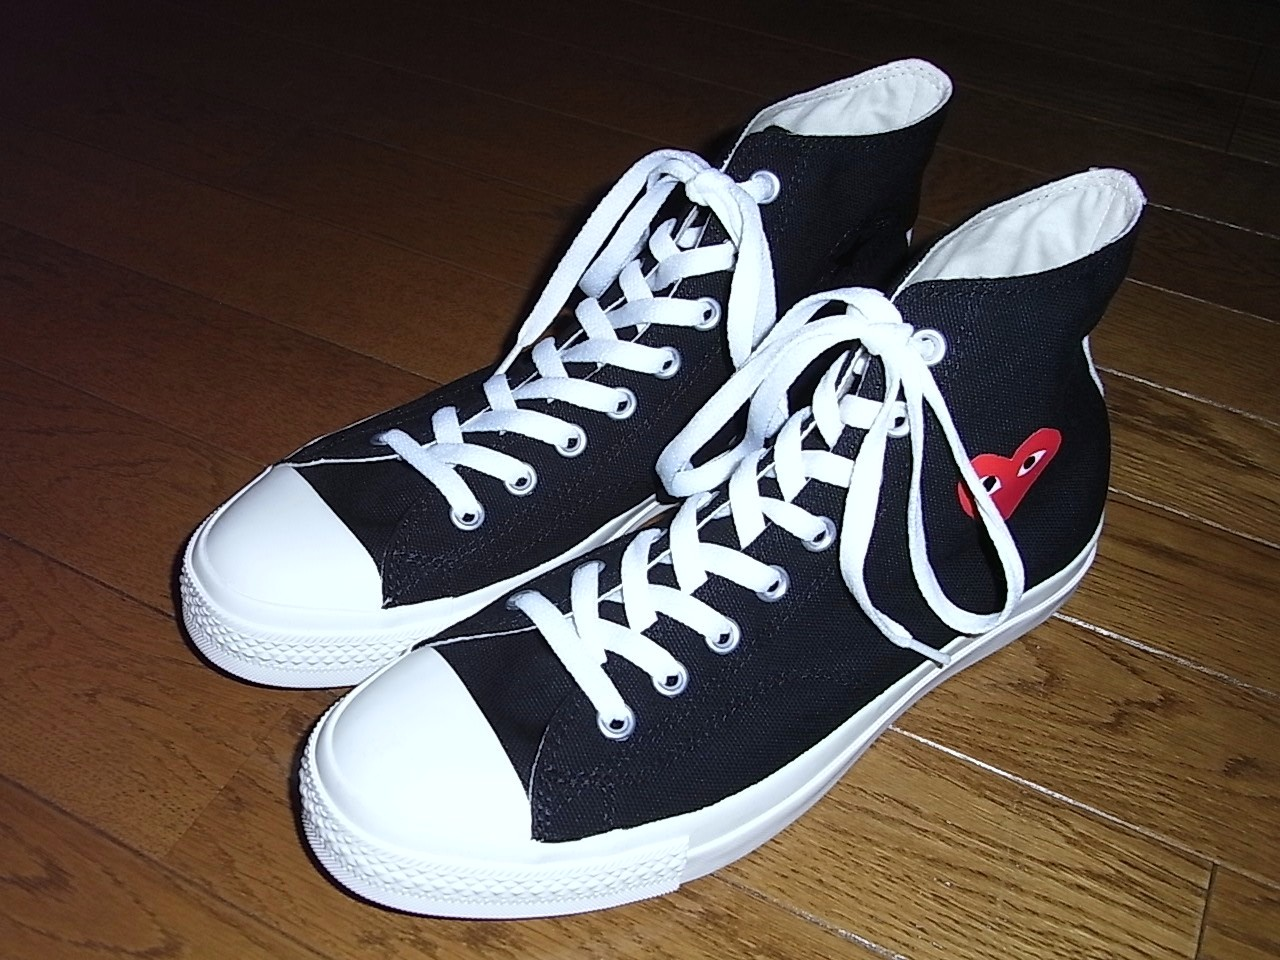 PLAY COMME des GARCONS x CONVERSE ALL STAR_f0010106_23541539.jpg